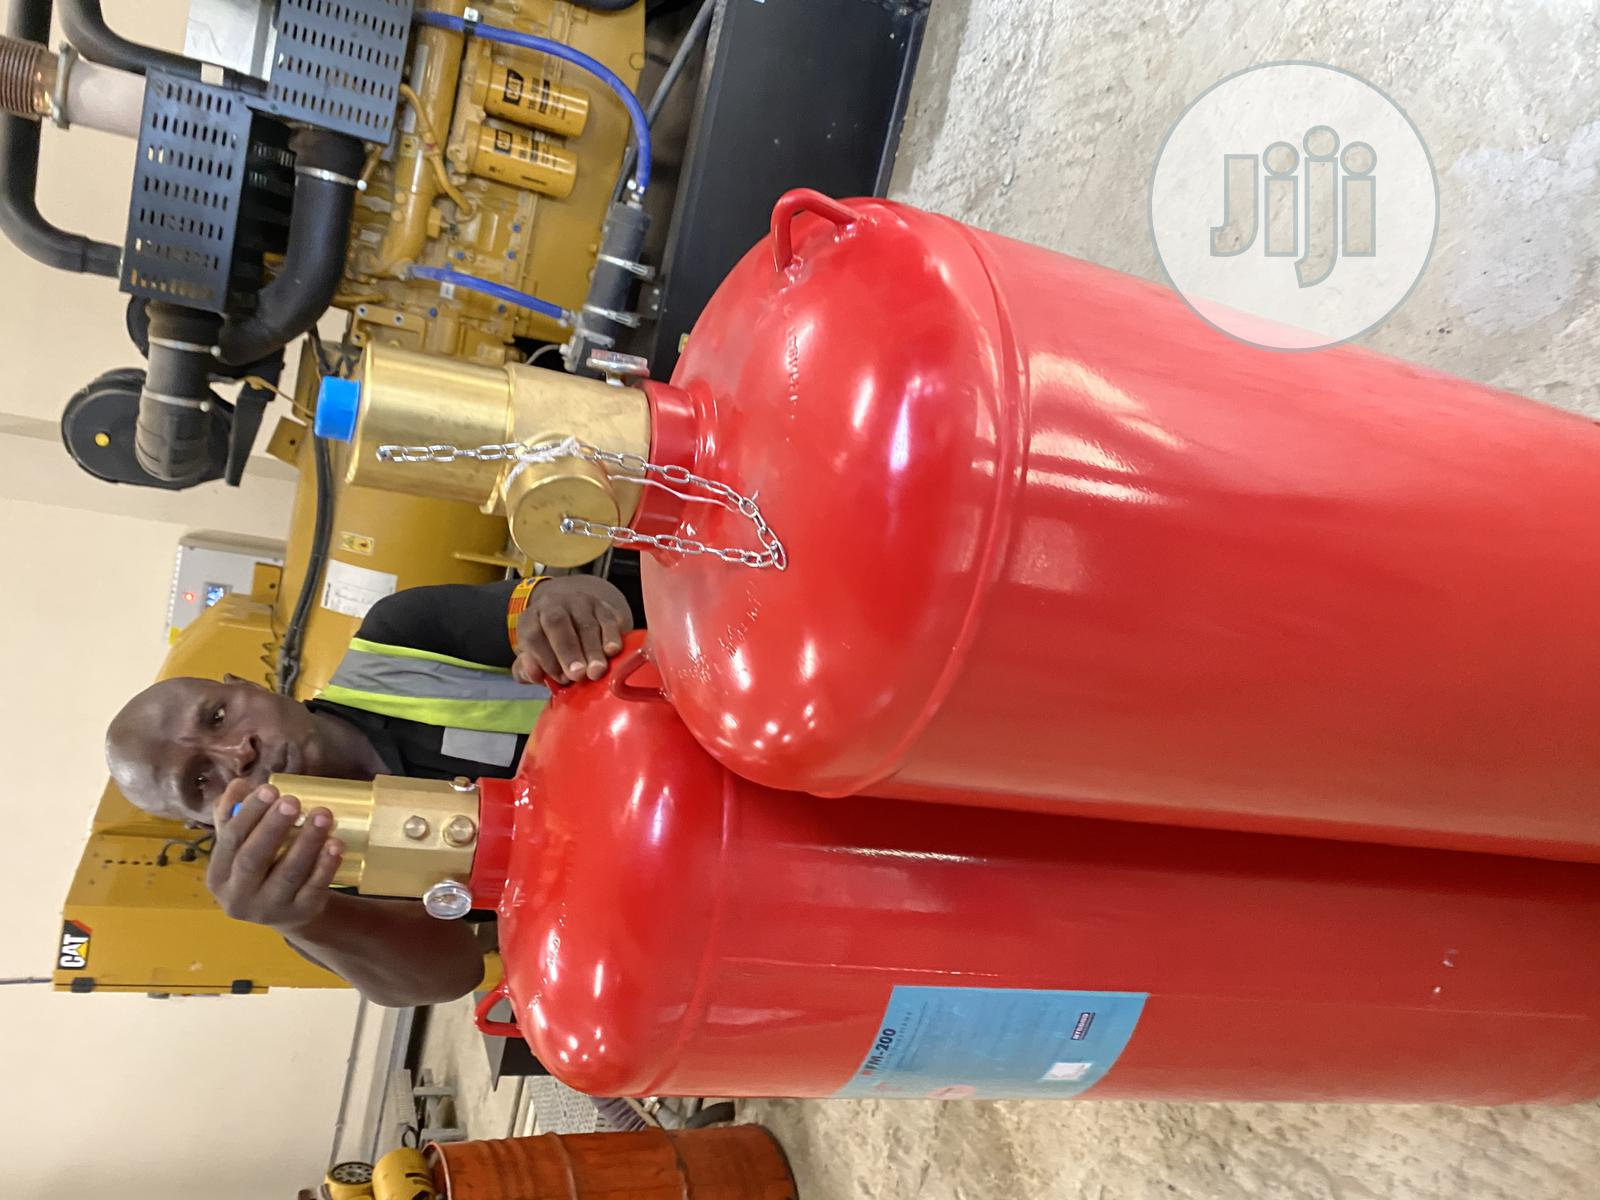 Fm200 Fire Suppression System Refilling (UL Approved)